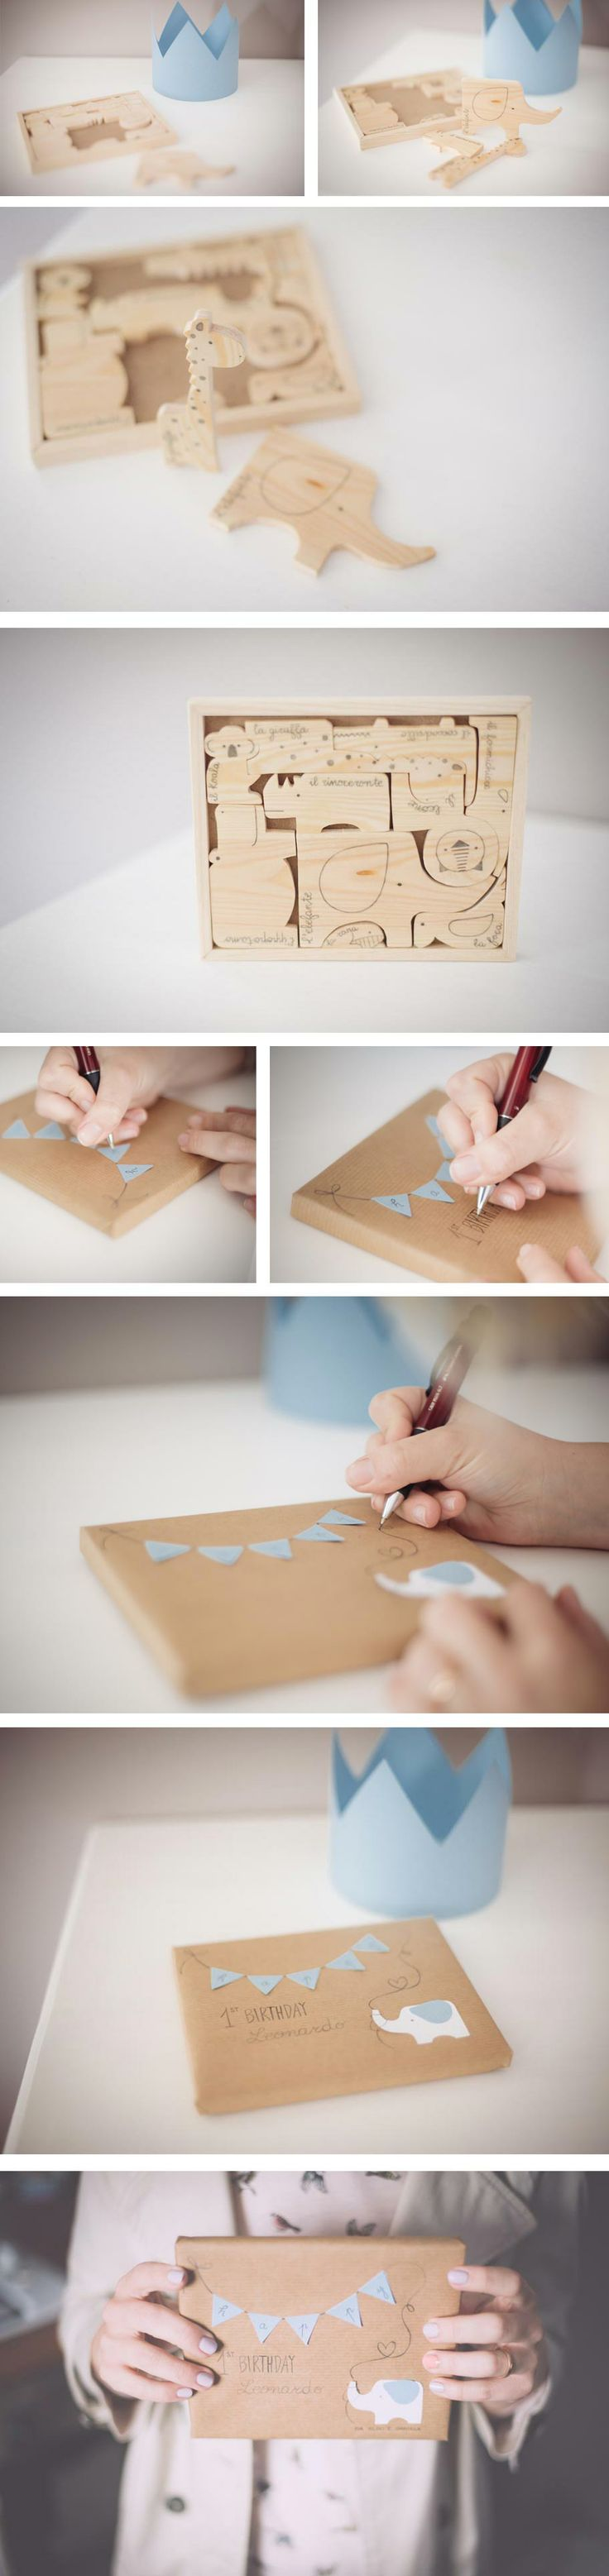 AnD photography handmade -  gift ideas for your little prince! wooden jungle friends and a paper crown <3